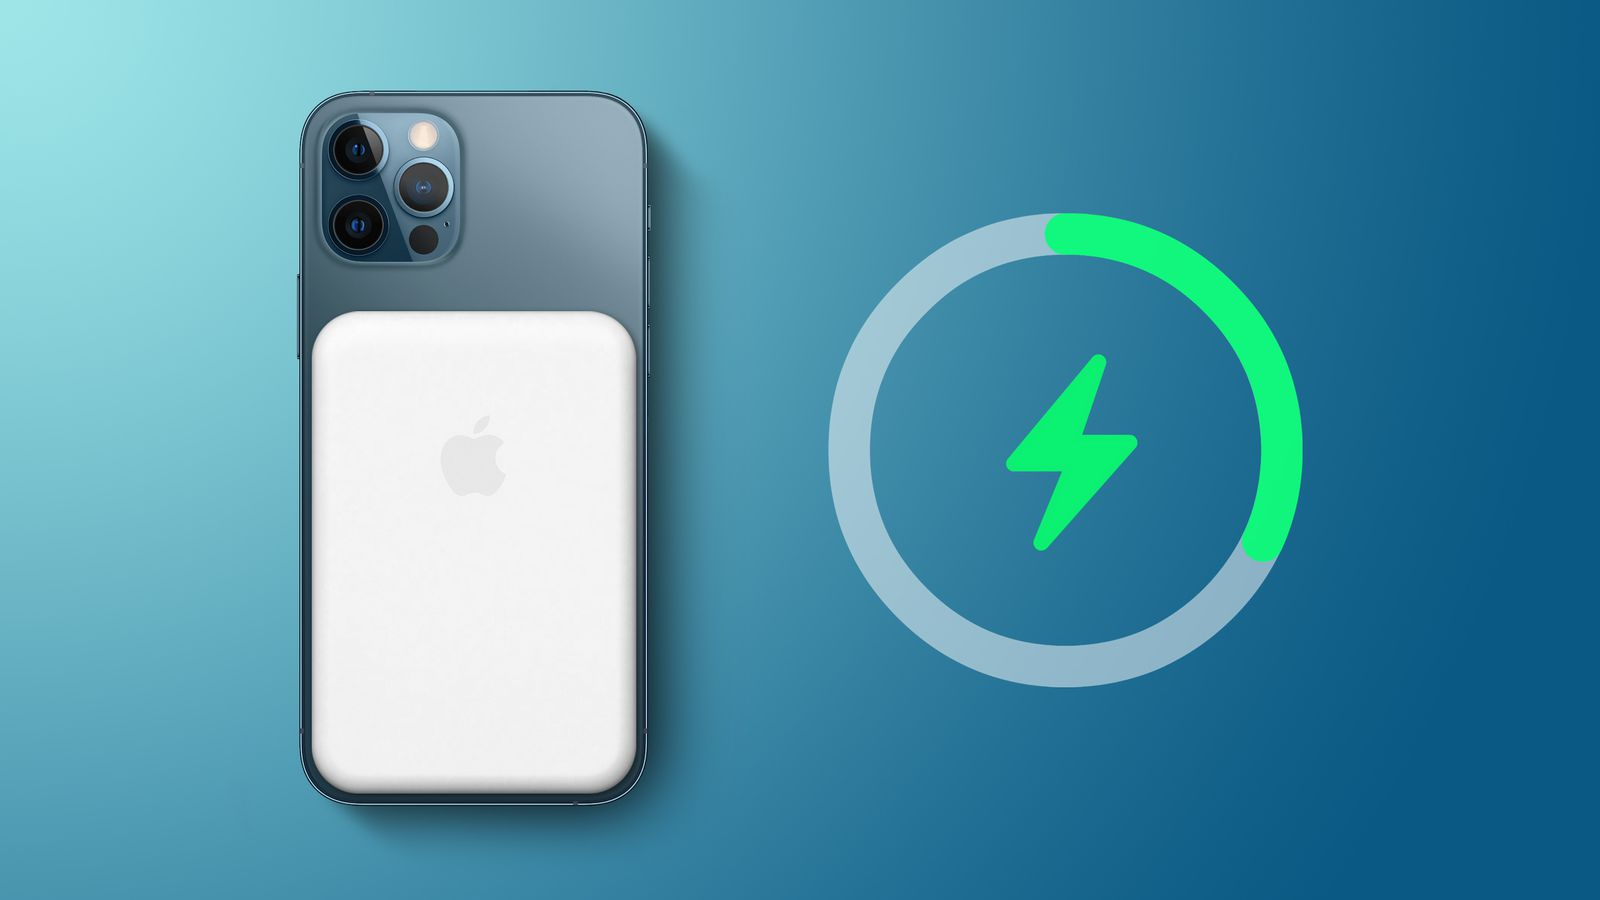 MagSafe battery pack and Apple